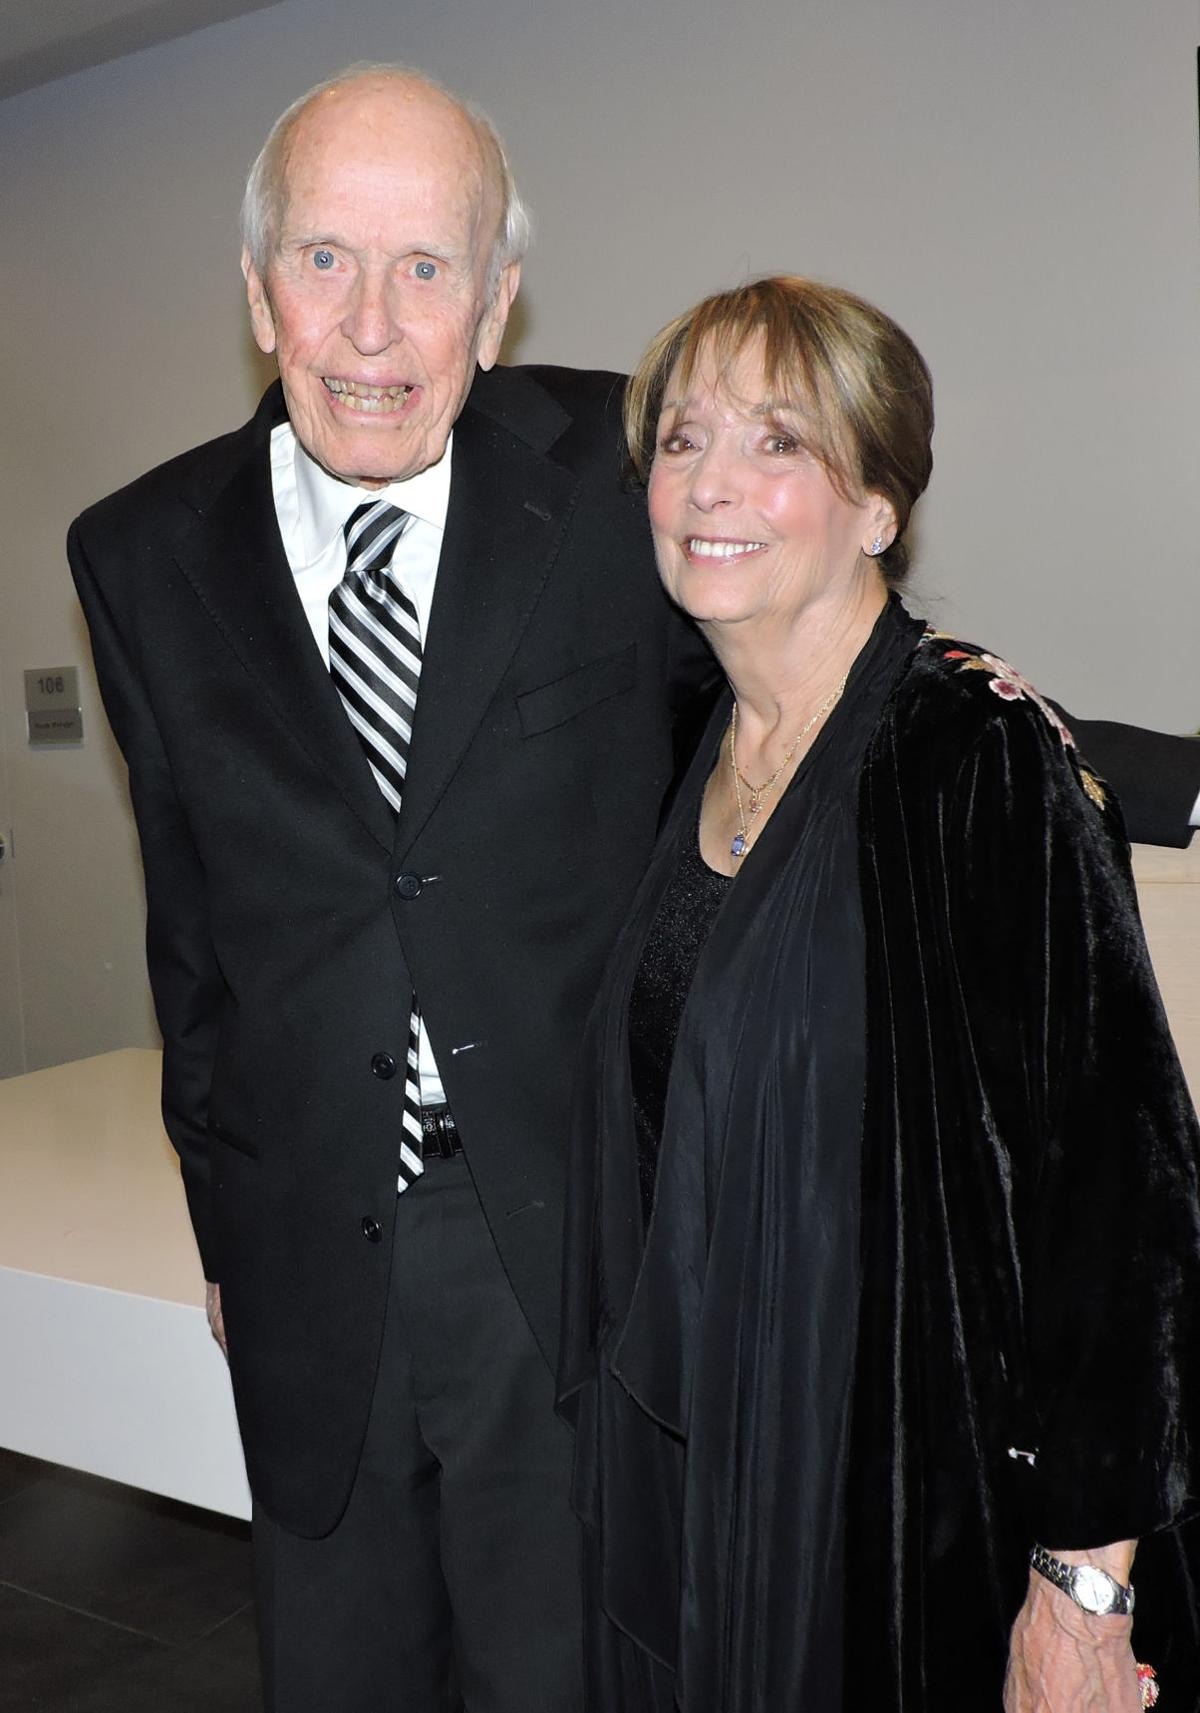 Ent Center for the Arts Opening Gala: Bob and Claudia Mitchell 020318 Photo by Linda Navarro